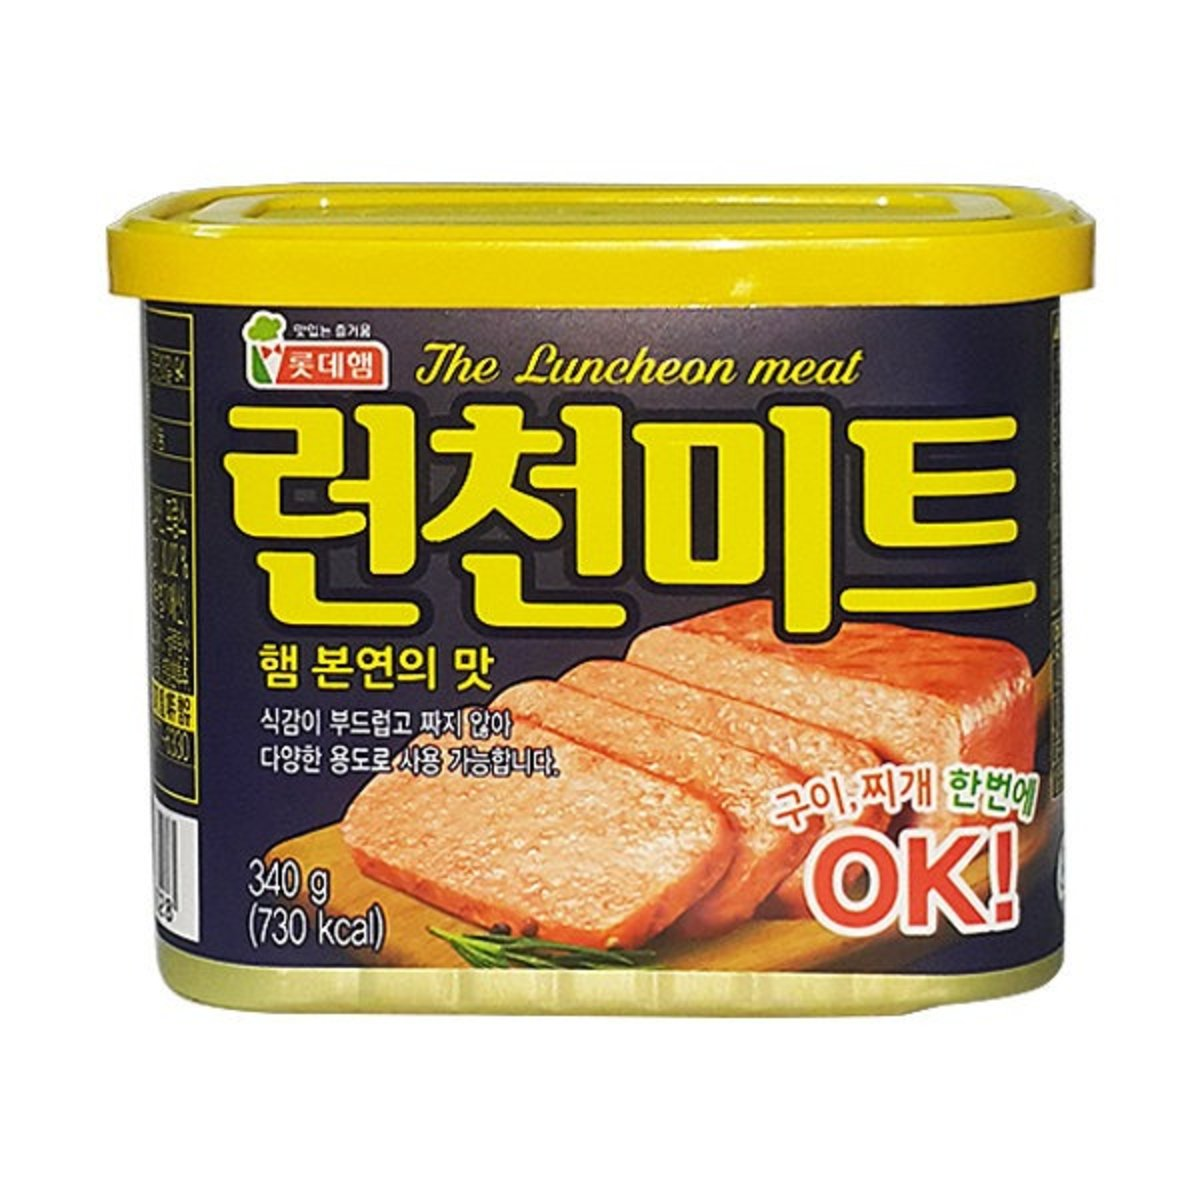 Lotte Luncheon Meat 340g    [Parallel Import Product]